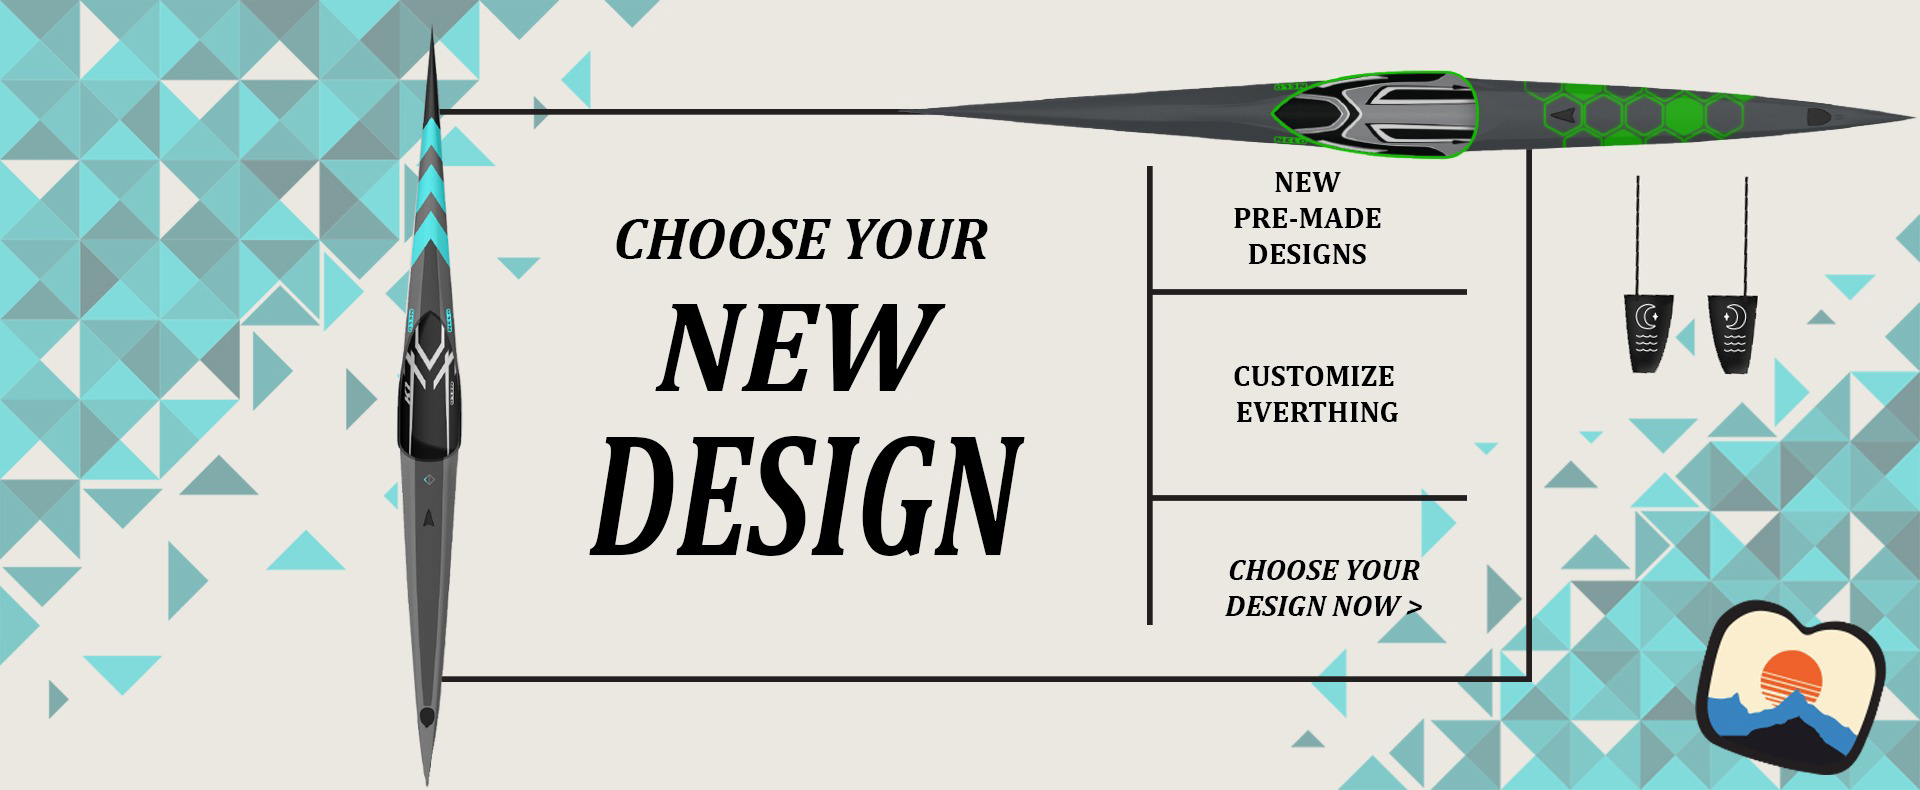 Choose your design